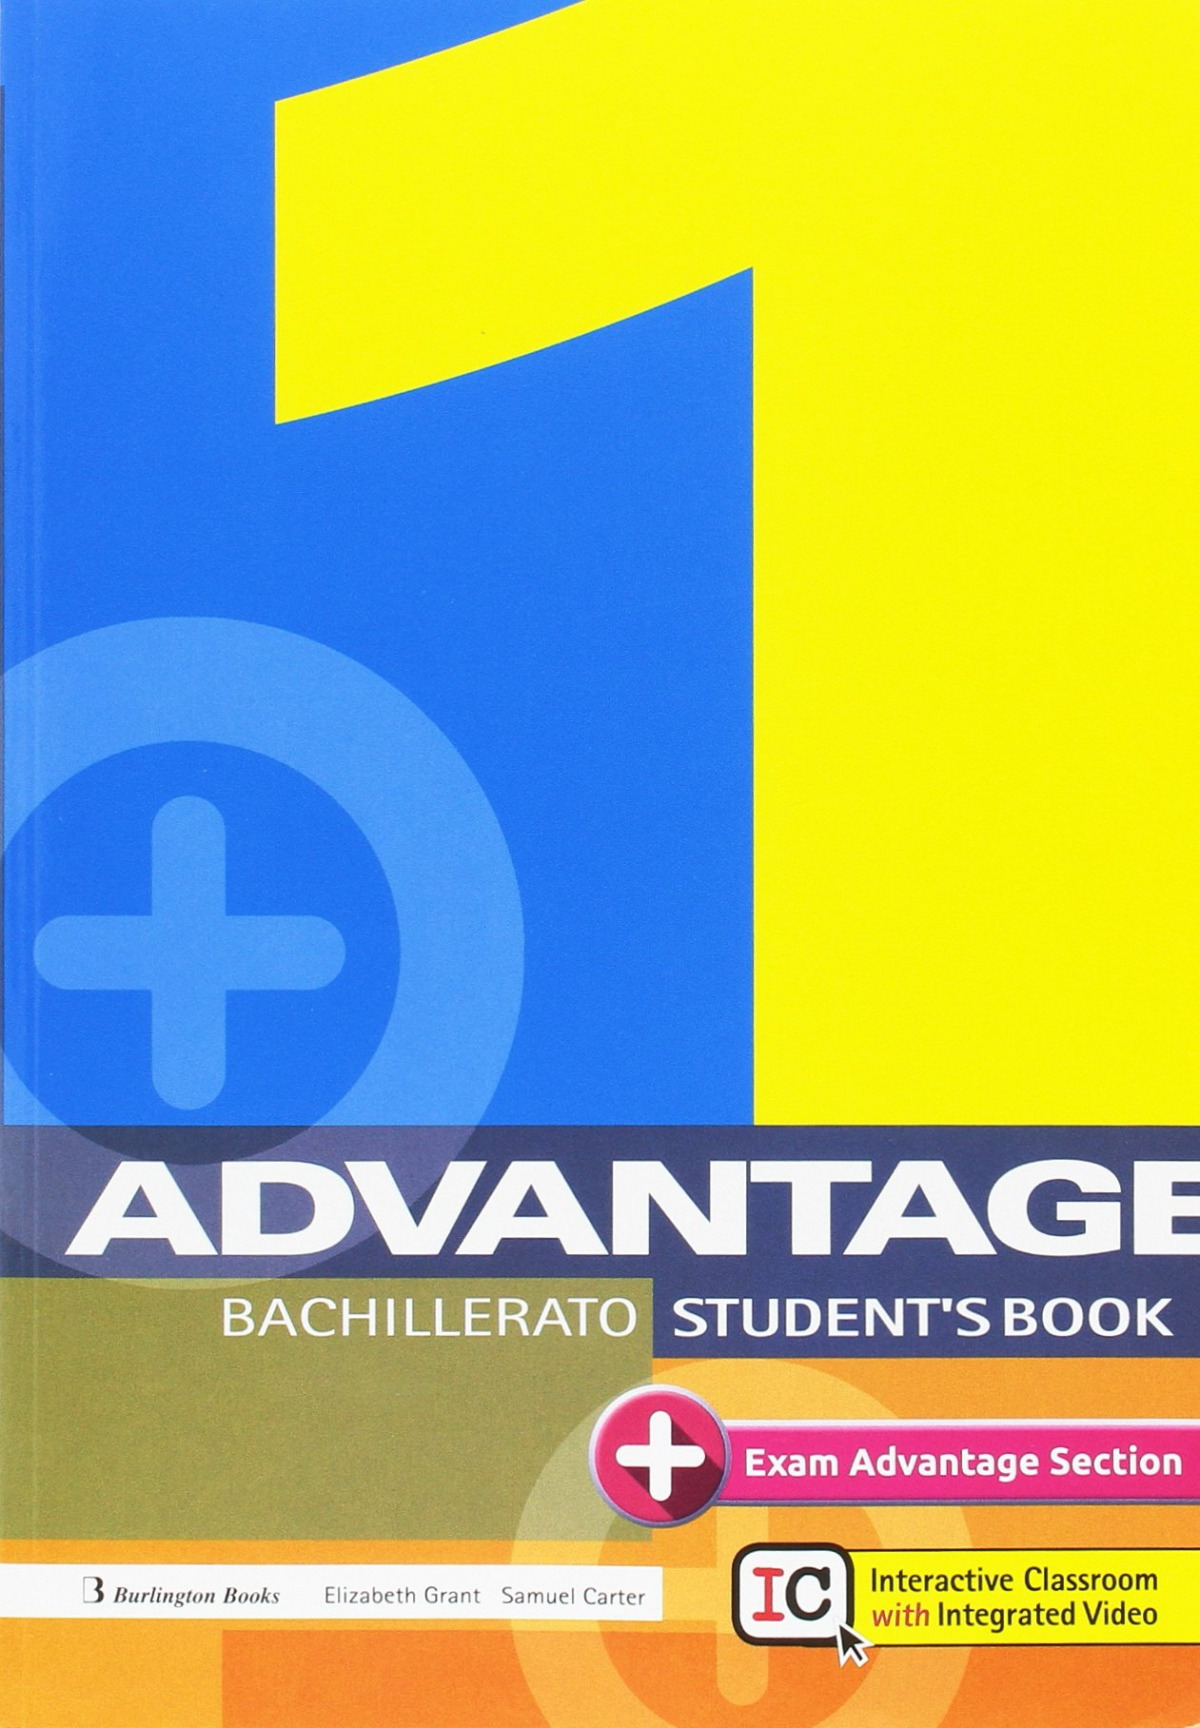 Advantage for Bachillerato 1 Student's Book 2017